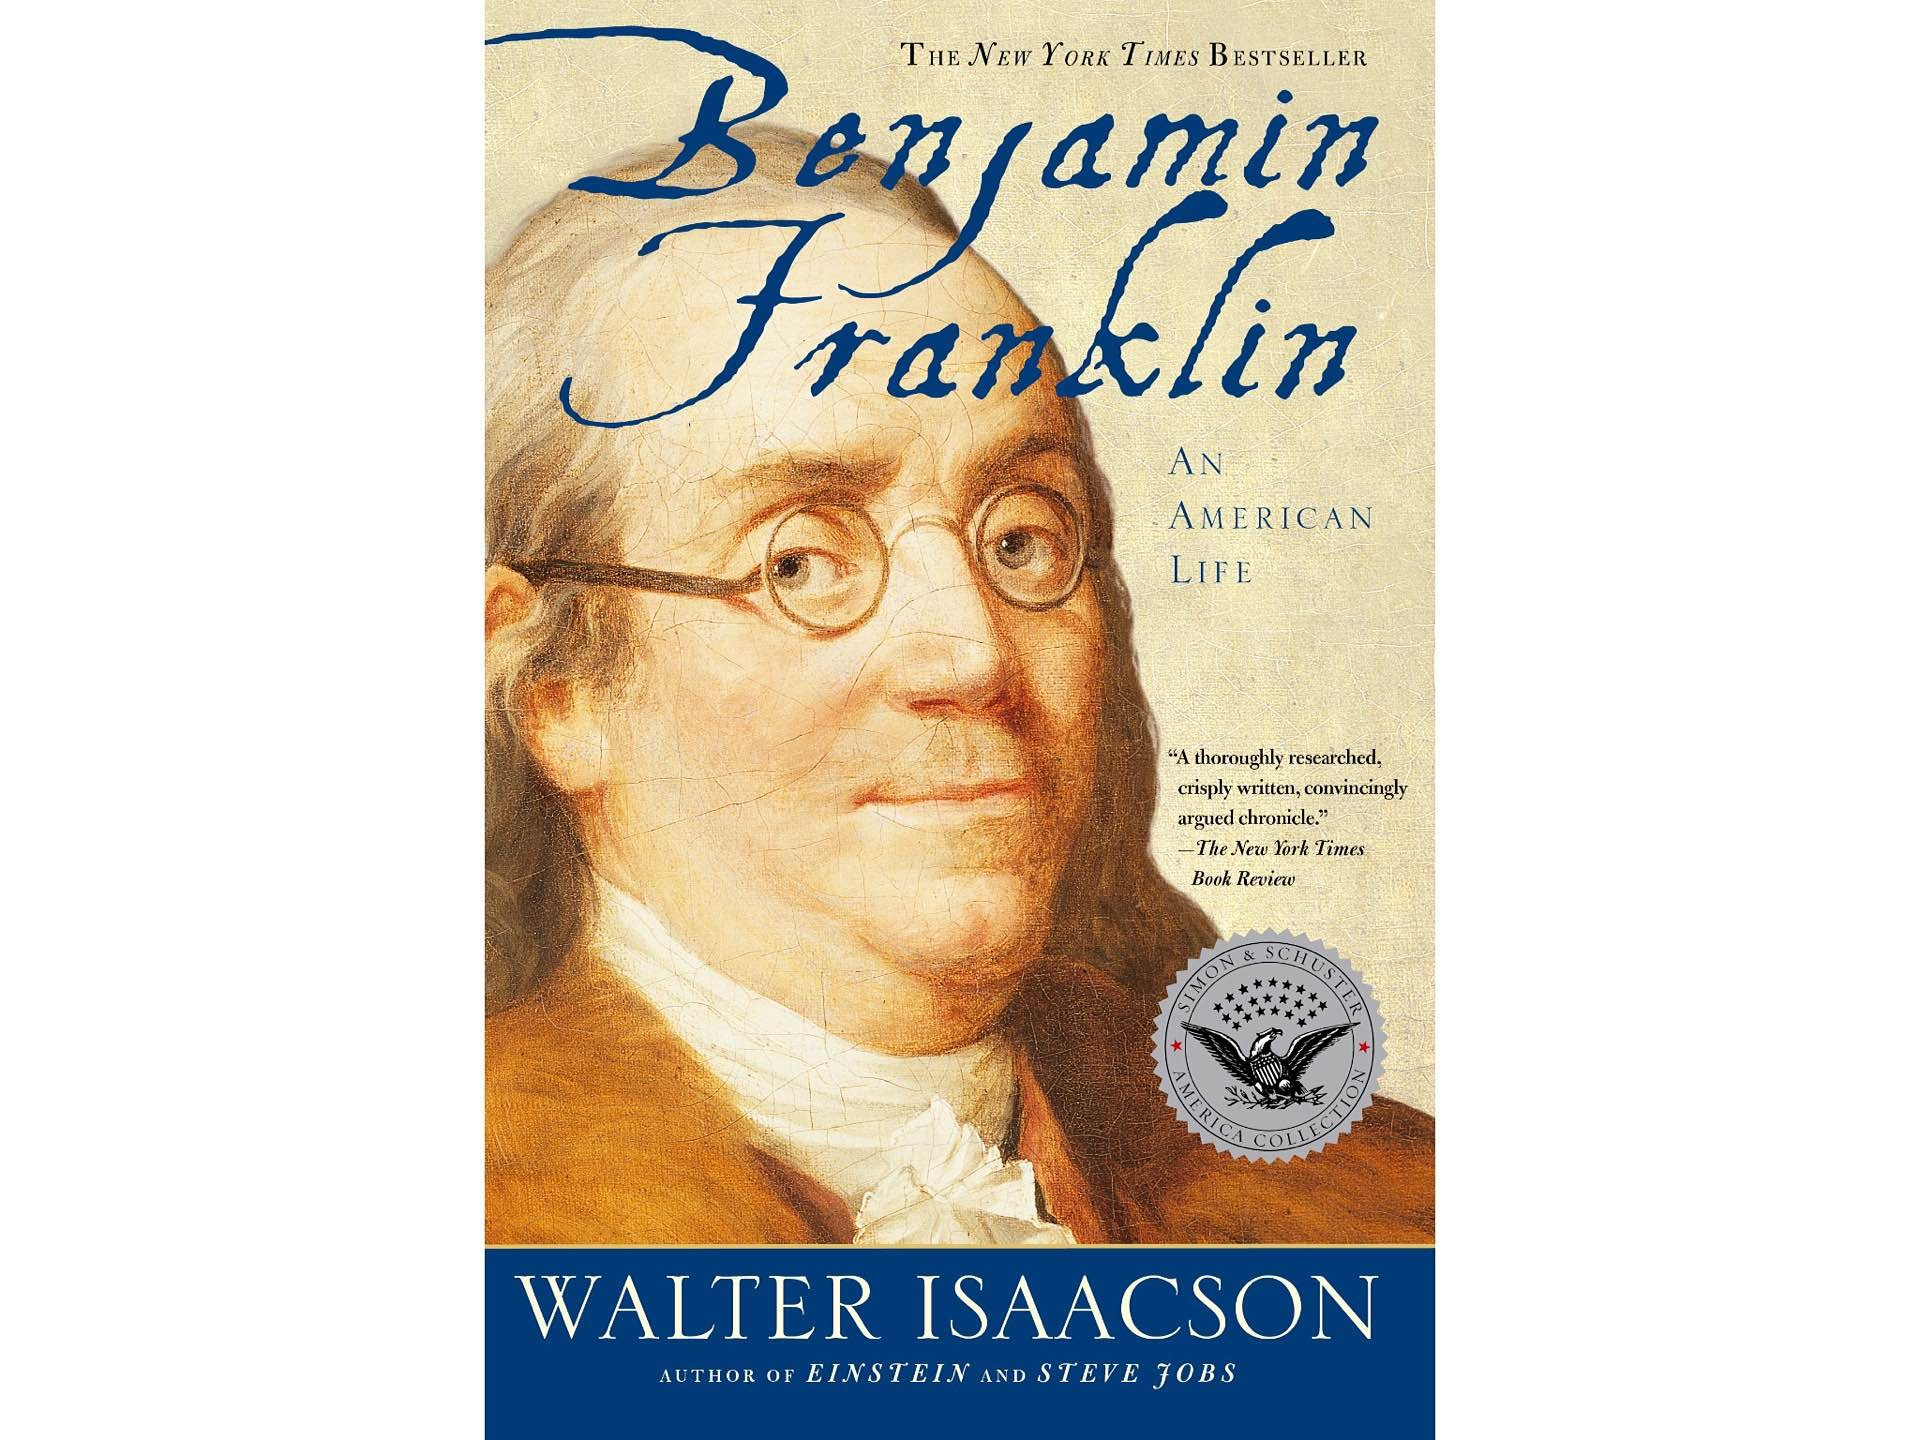 Benjamin Franklin: An American Life by Walter Isaacson.